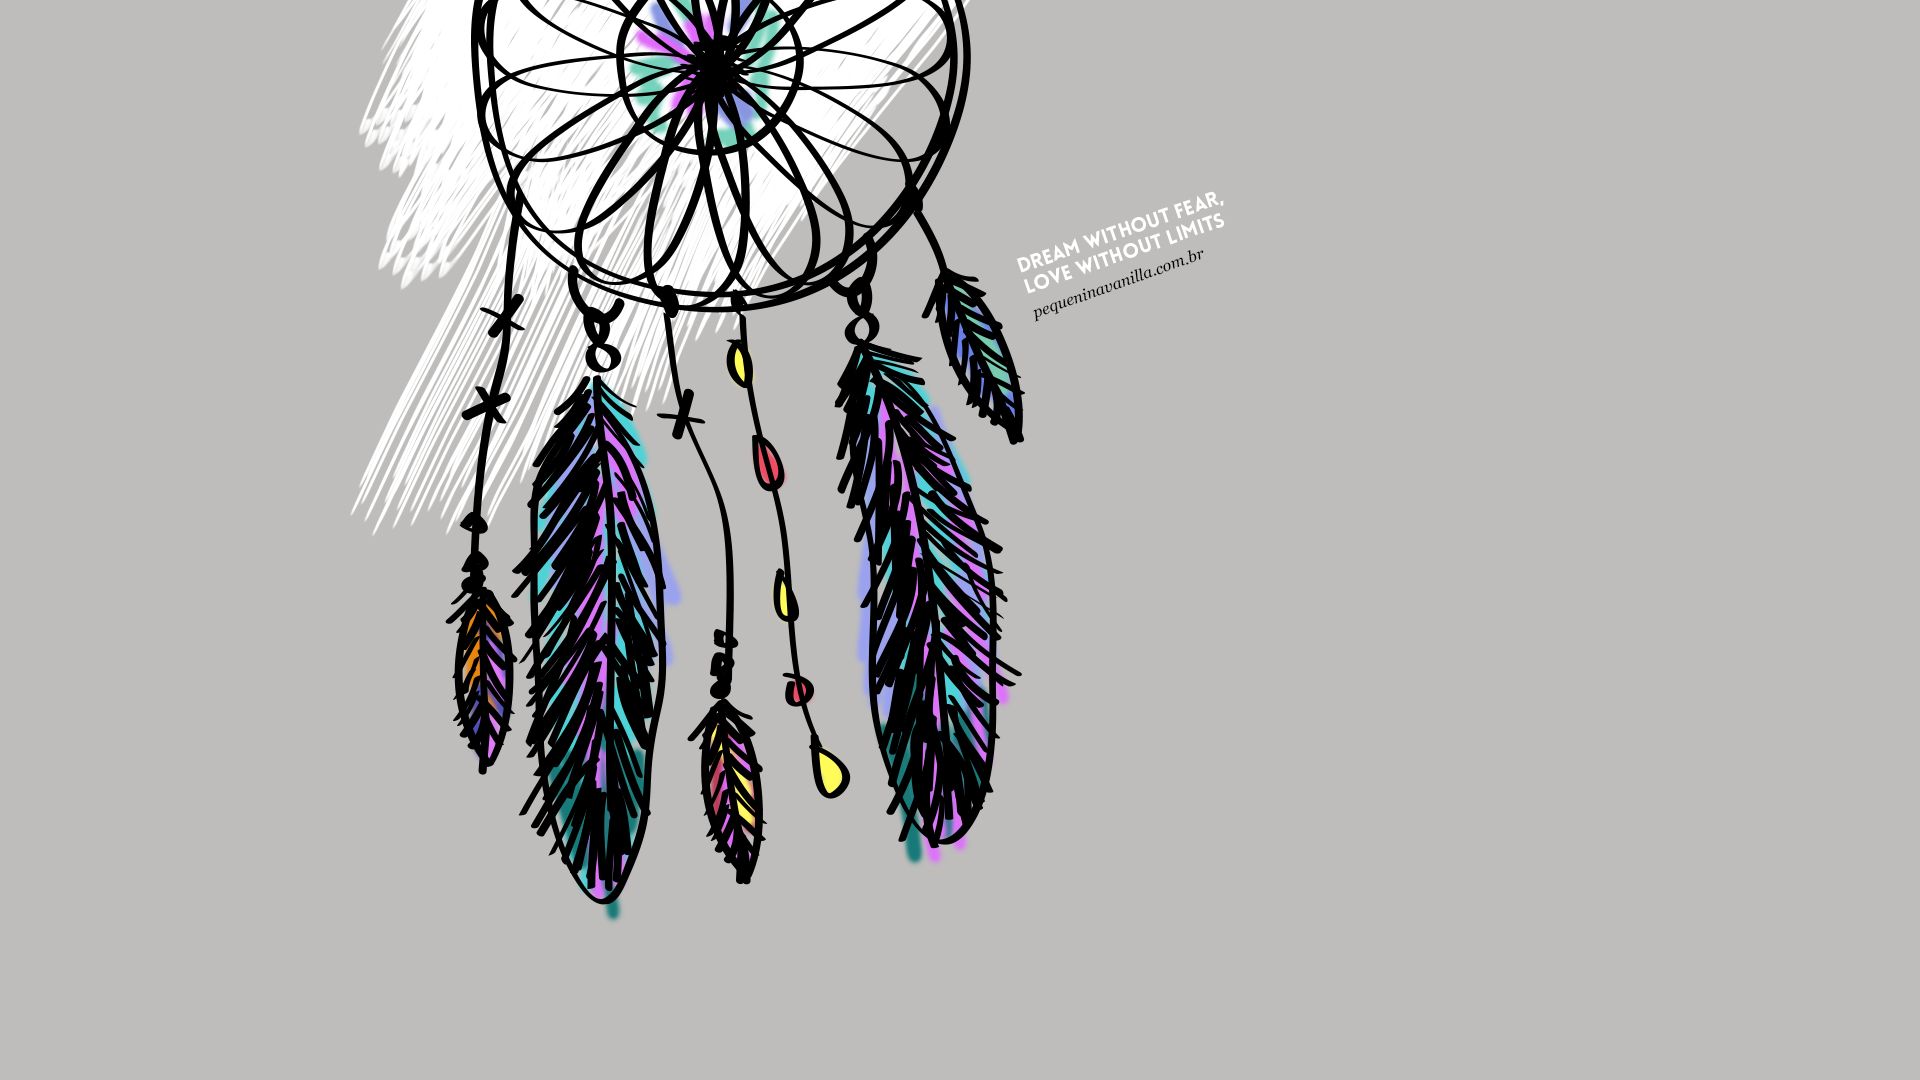 grey illustrated dreamcatcher dream love desktop wallpaper background iphone and desktop wallpapers pinterest wallpaper backgrounds and wallpaper